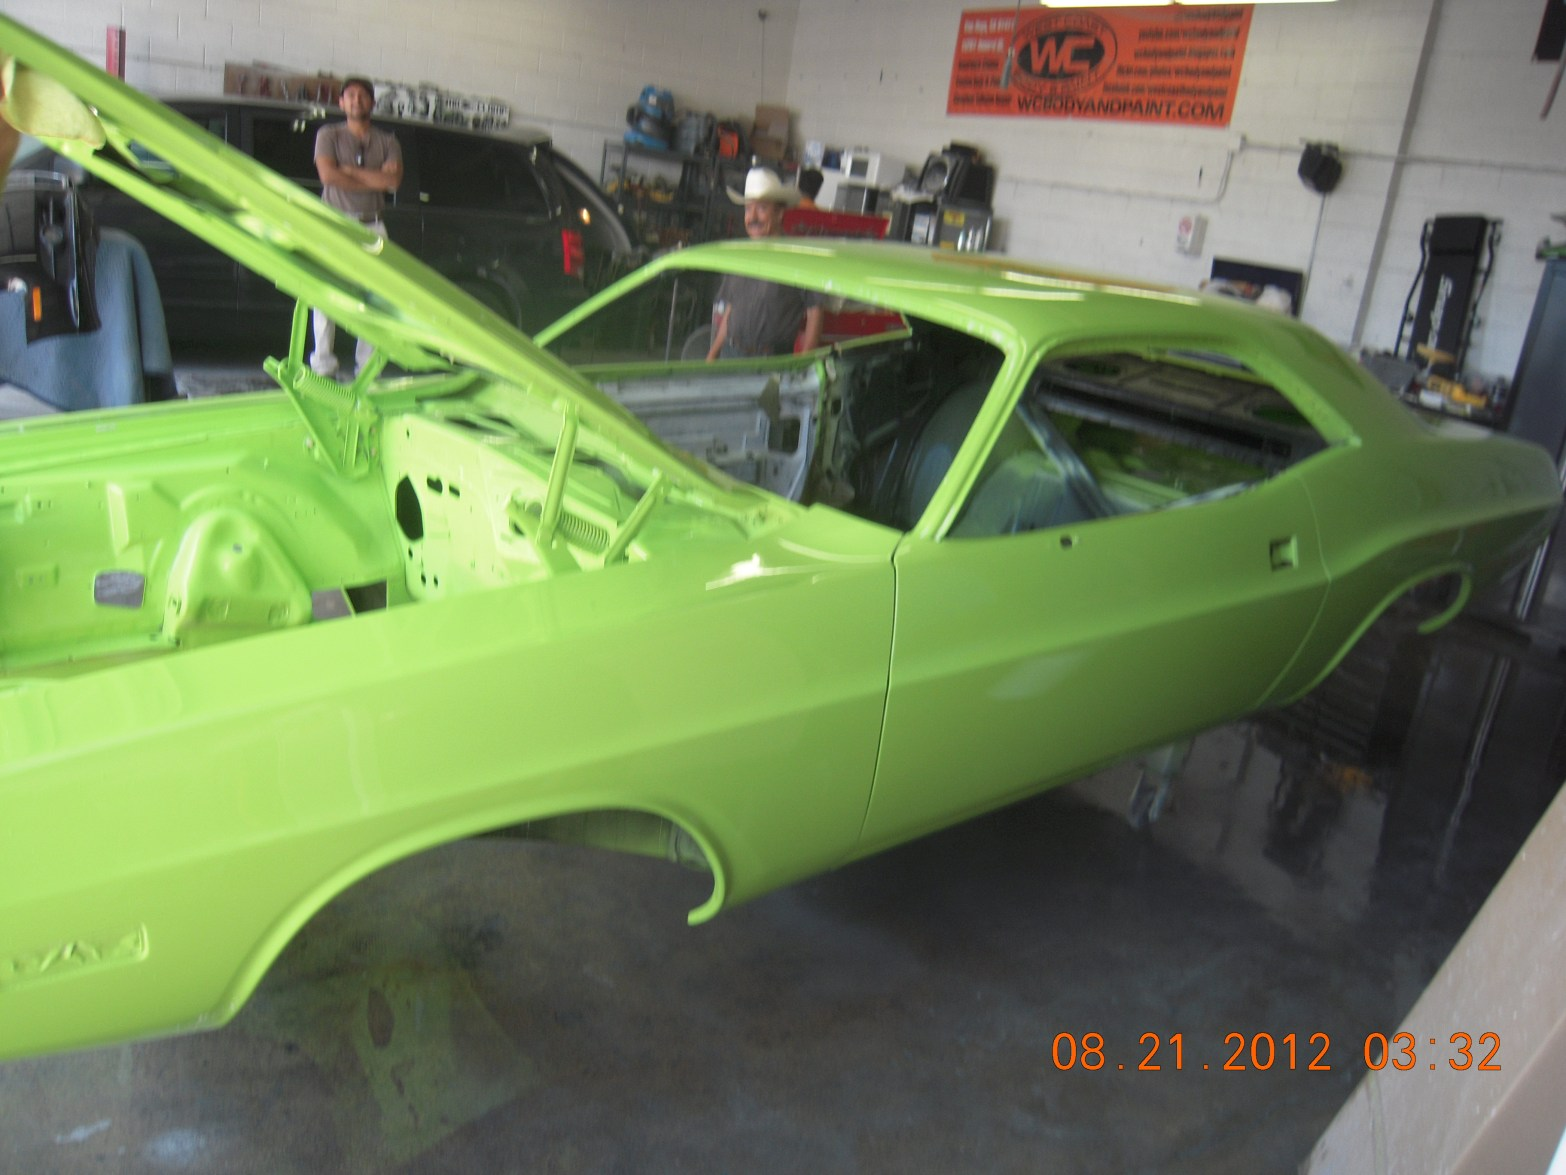 1971 Dodge Challenger Muscle Car Restoration | WEST COAST ...